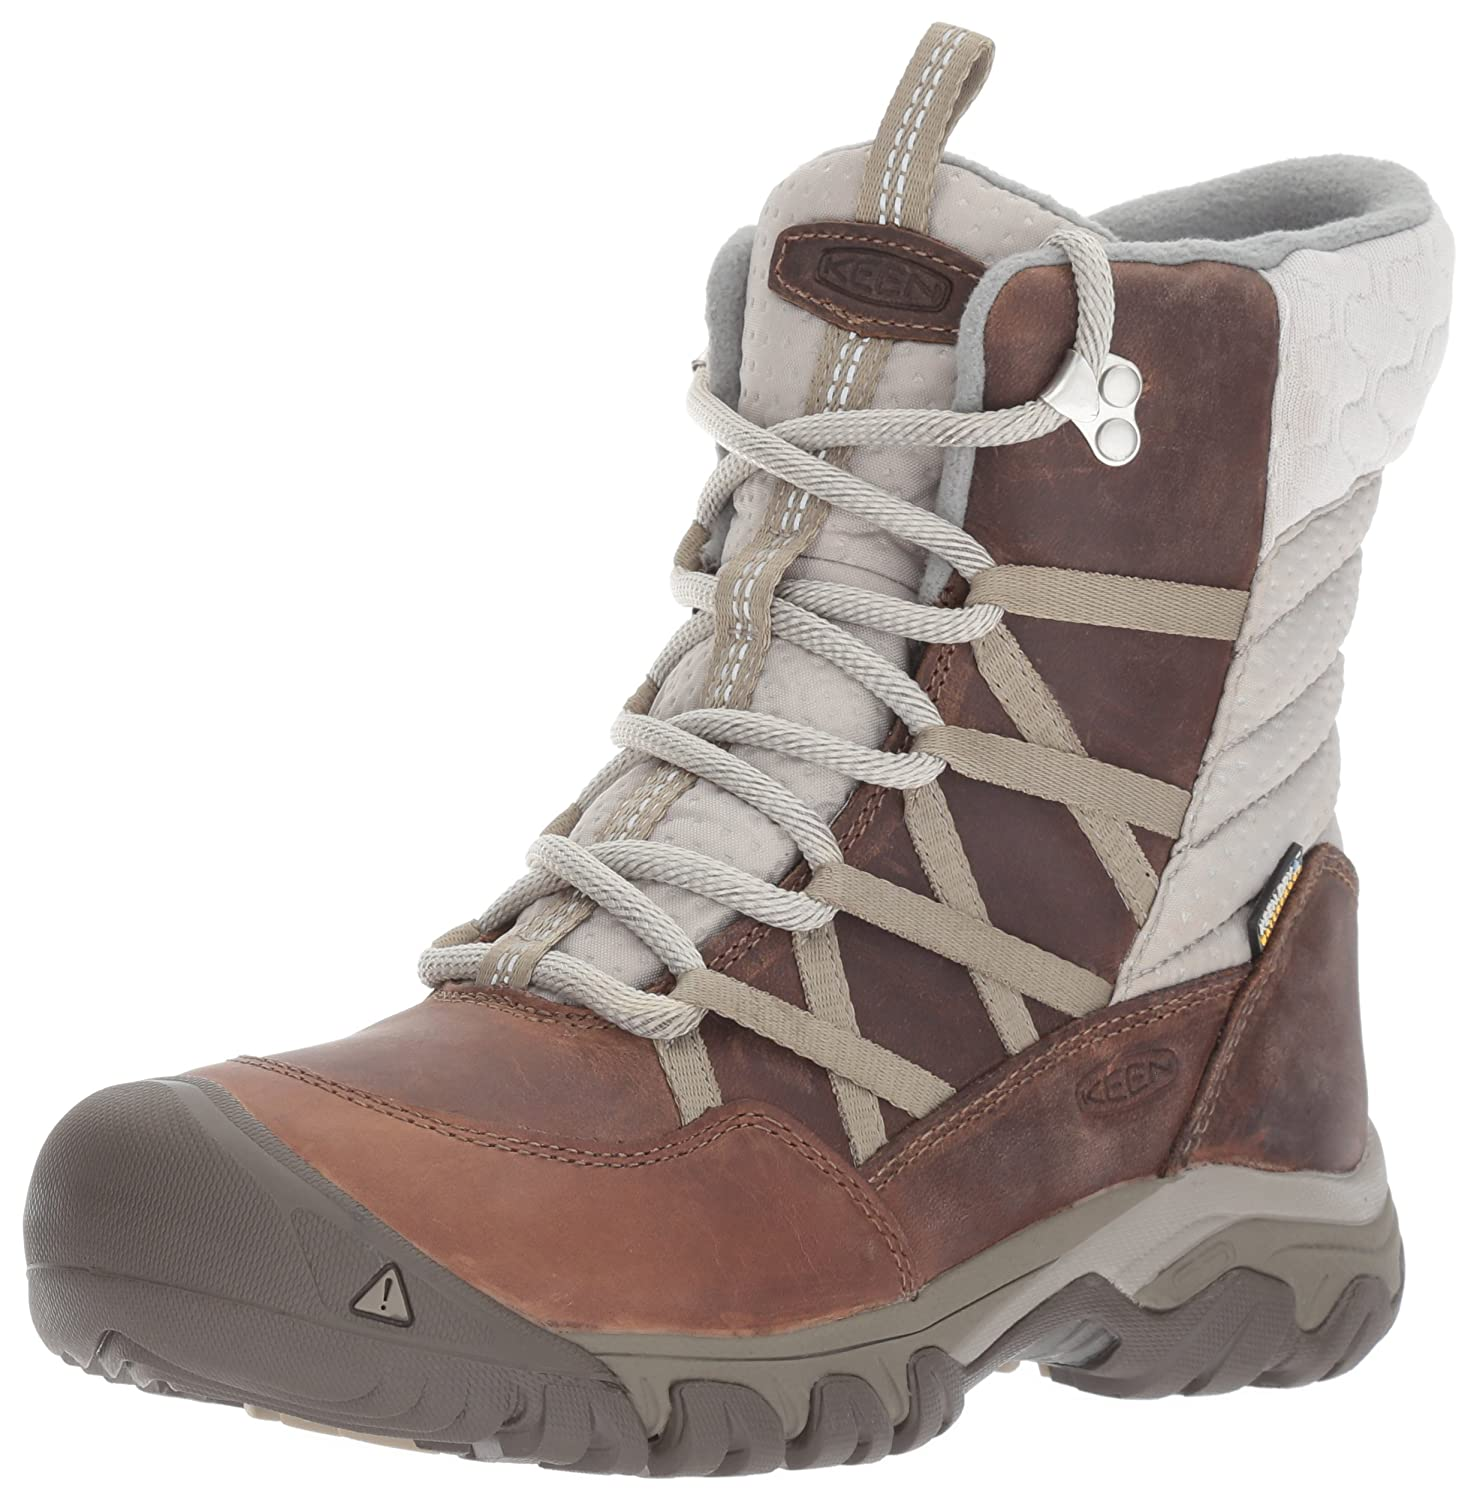 KEEN Women's Hoodoo III Lace up-w Snow Boot B01N95MDVF 10.5 B(M) US|Coconut/Plaza Taupe